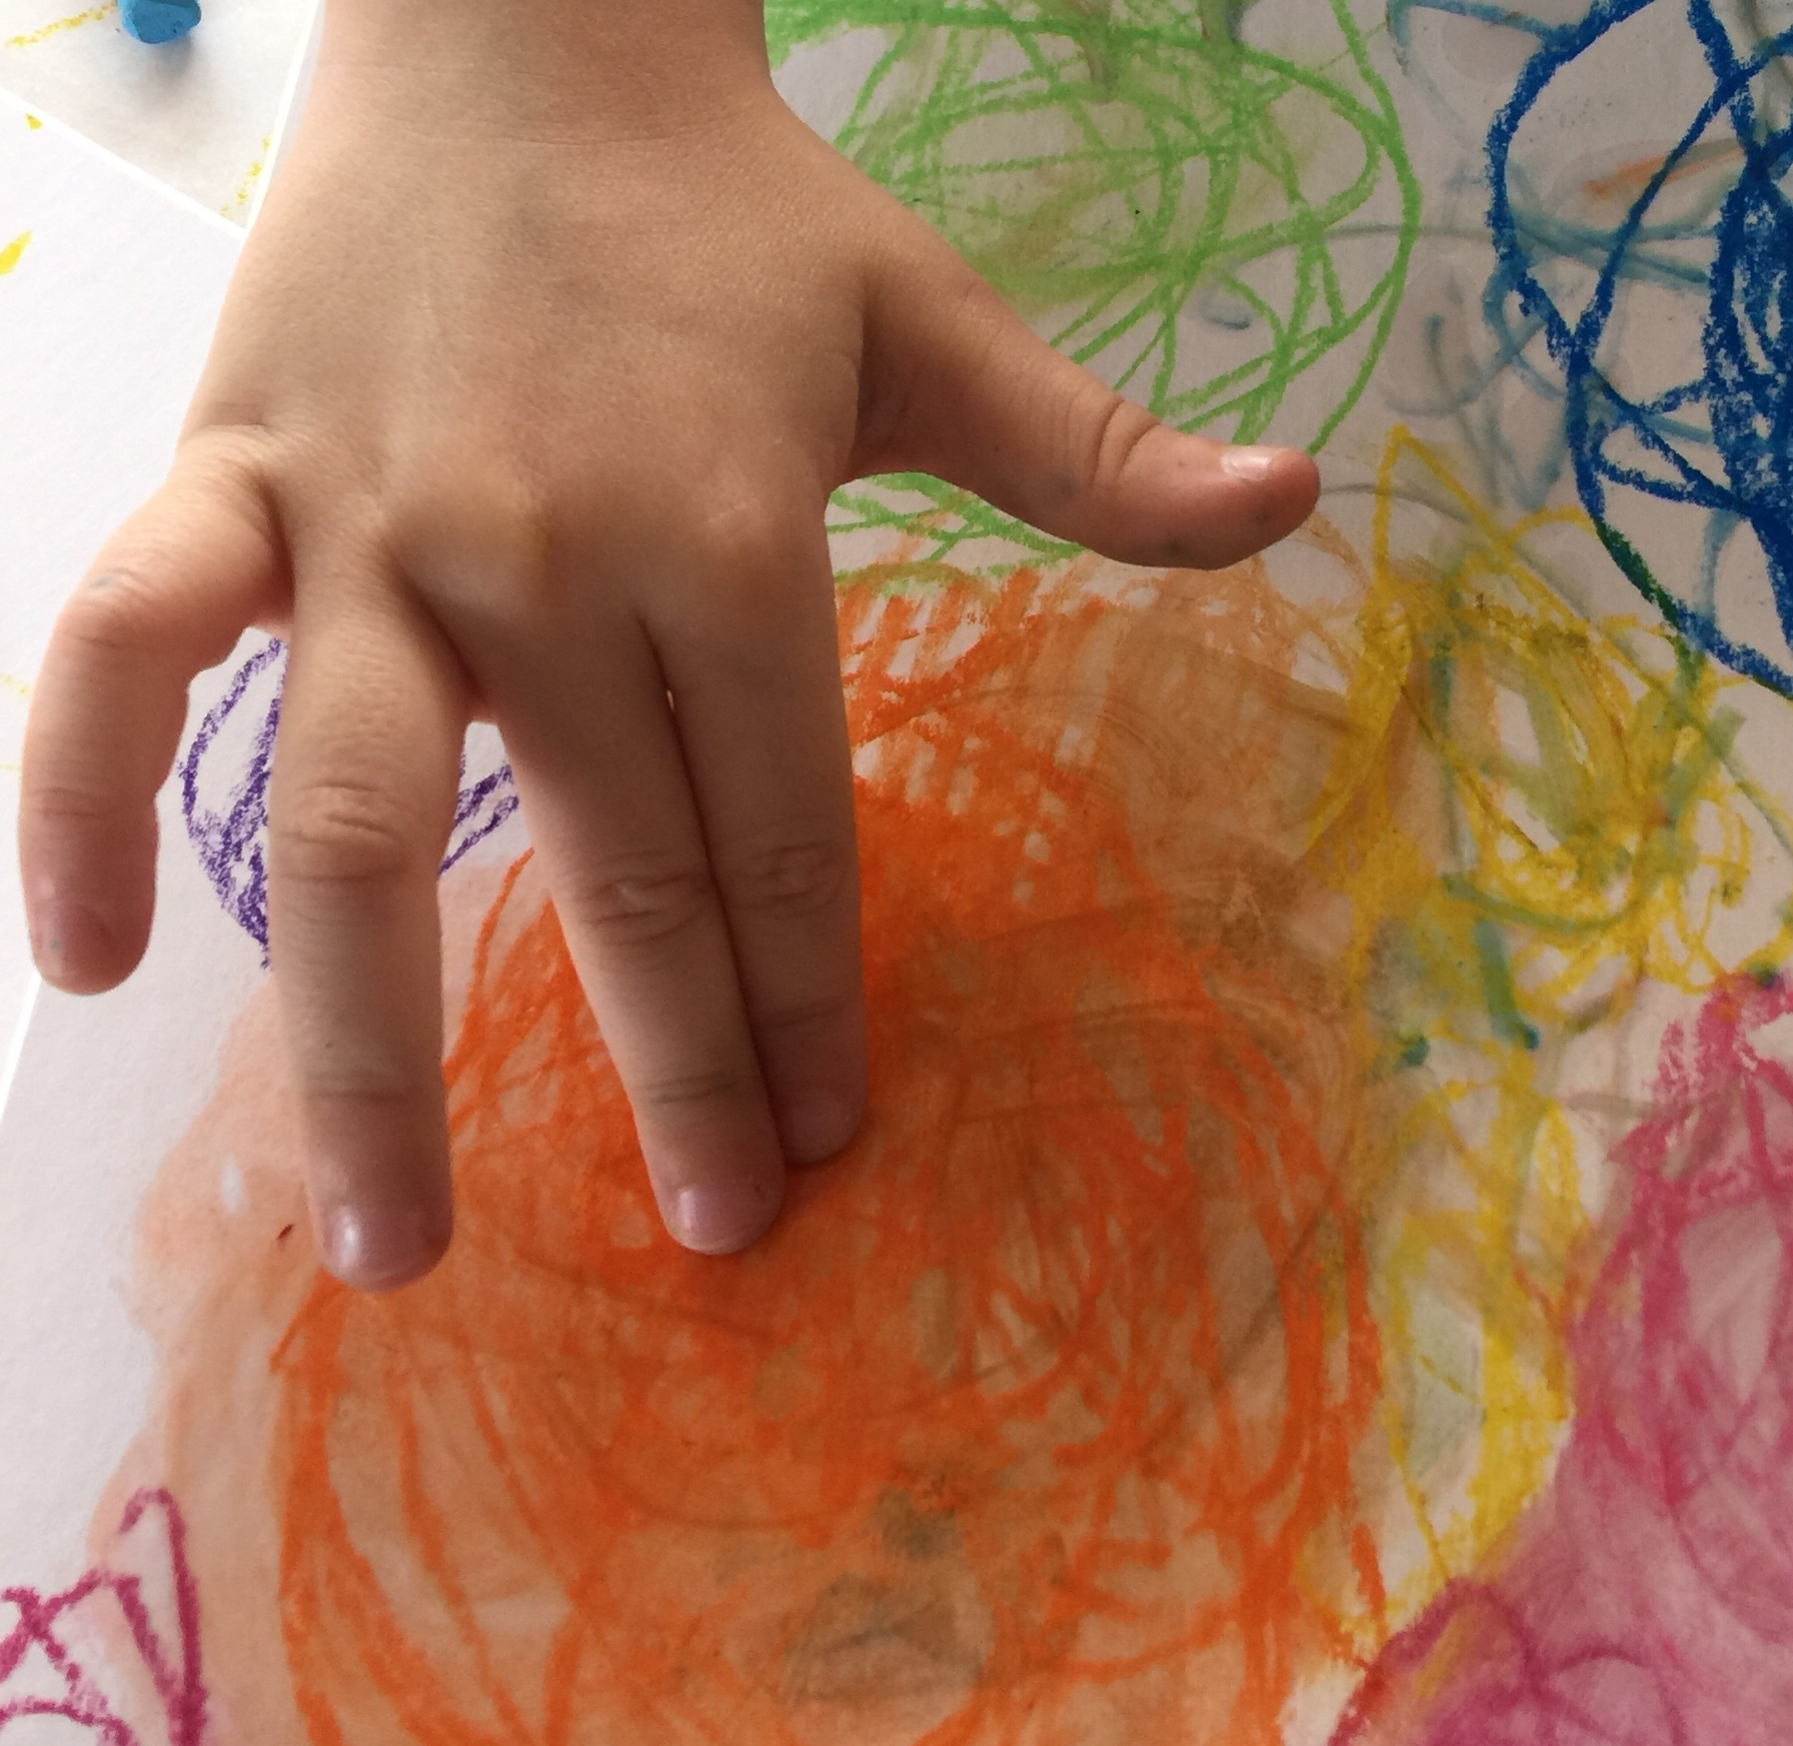 Oil pastel swirls turn painterly when you rub them with fingers dipped into baby oil.